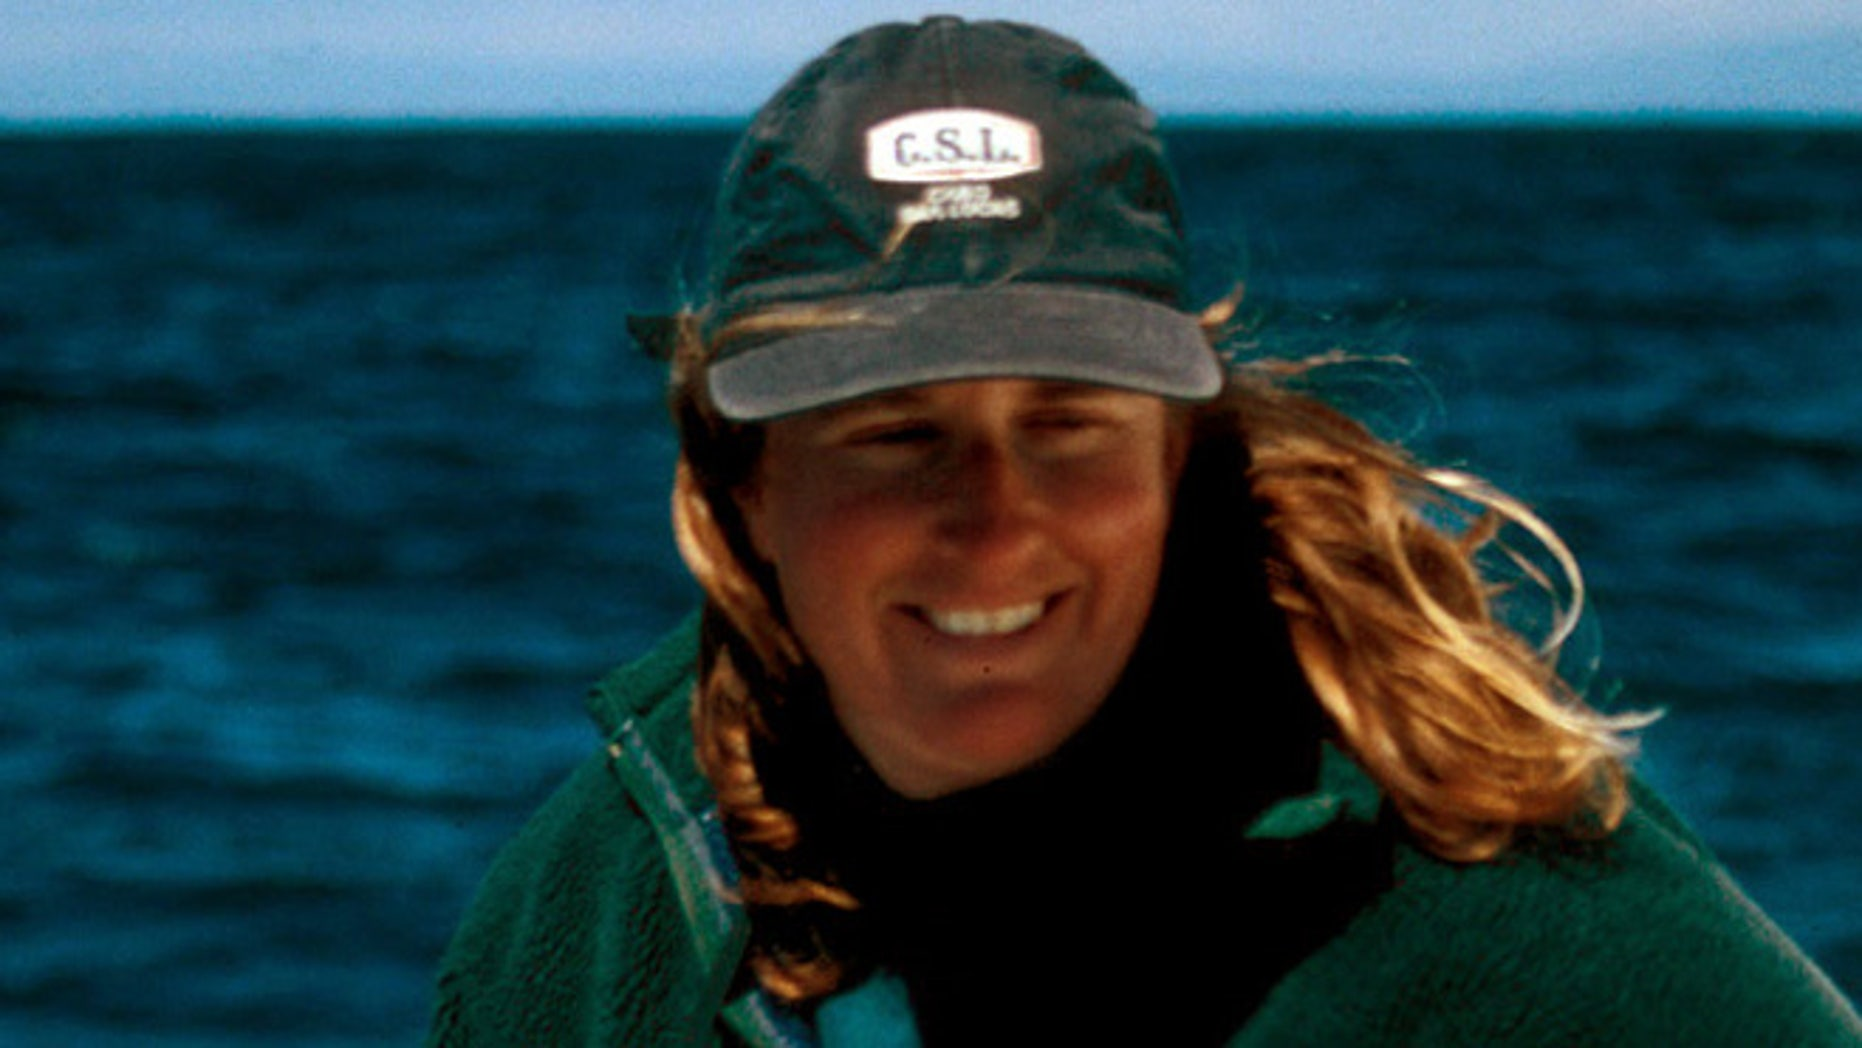 Marine biologist Nancy Black was brought up on criminal charges for feeding whales.